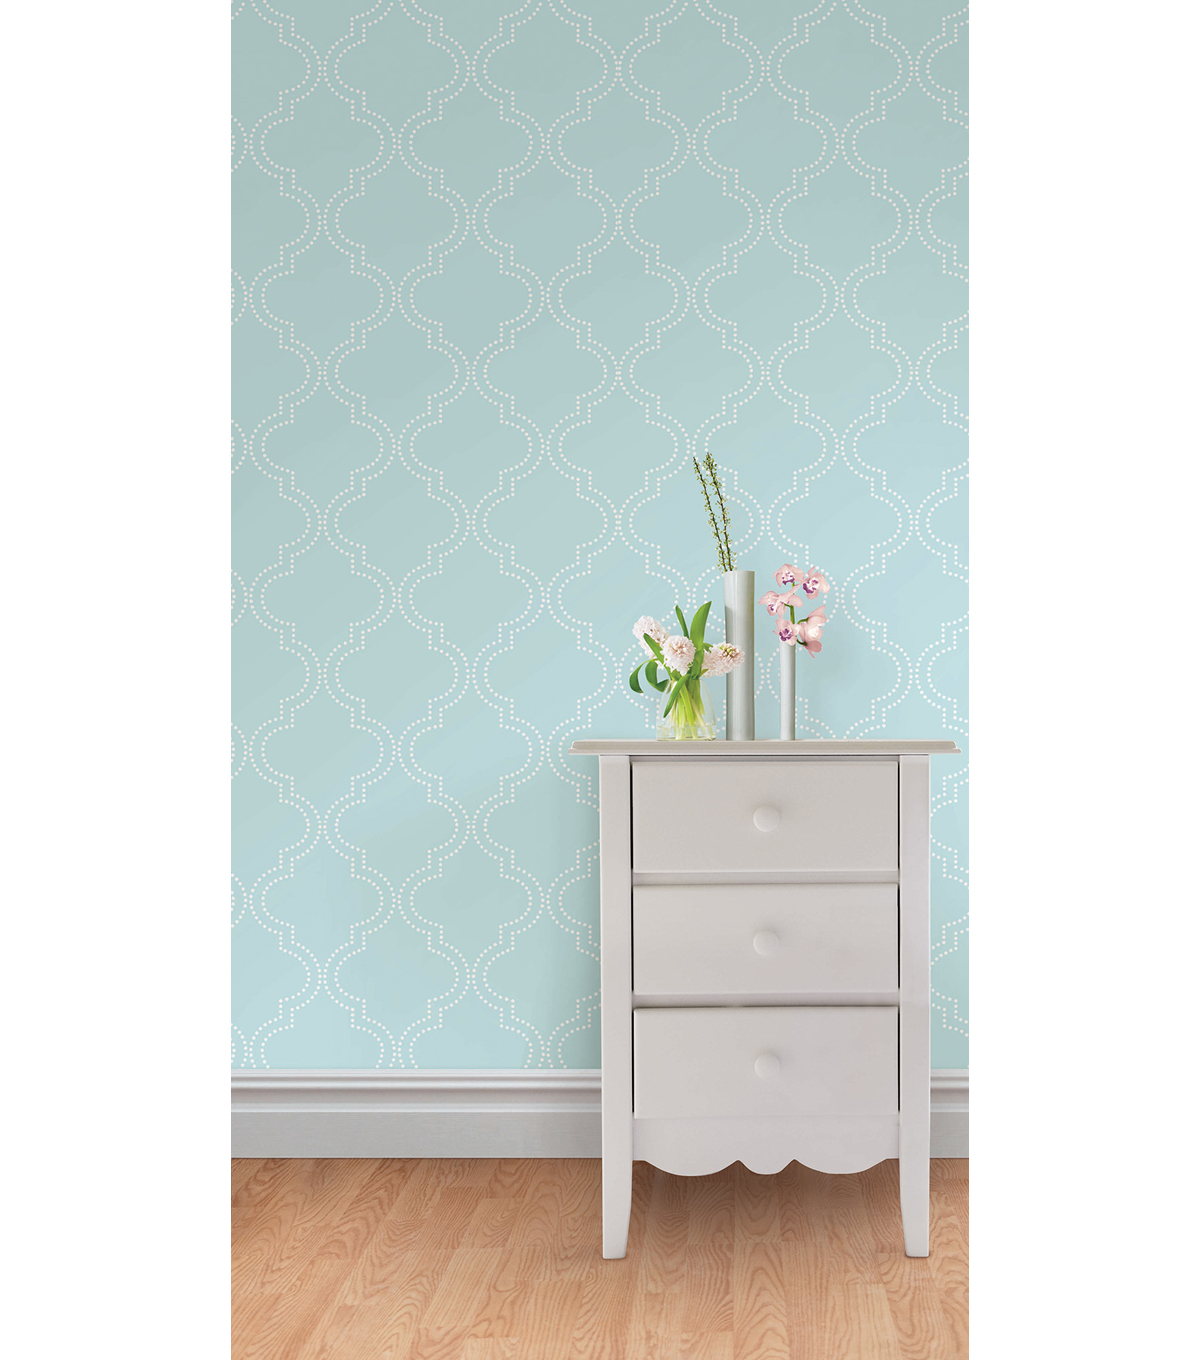 WallPopsNuWallpaper Blue Quatrefoil Peel And Stick Wallpaper